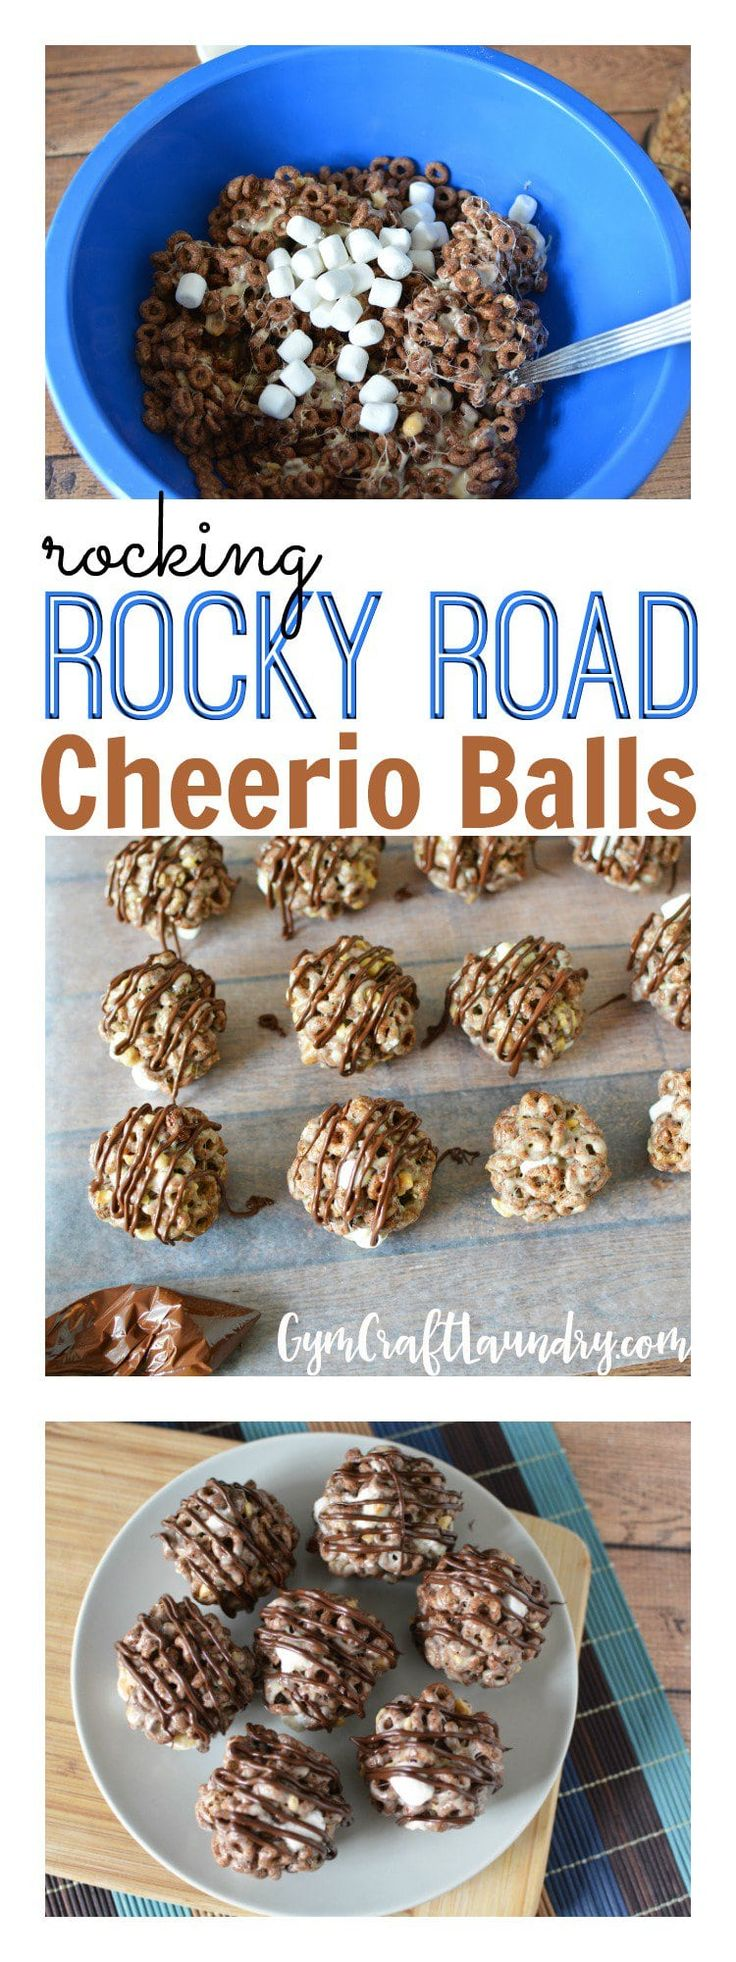 Easy homemade snack for kids. Make these rocking Rocky Road Cheerio Balls!